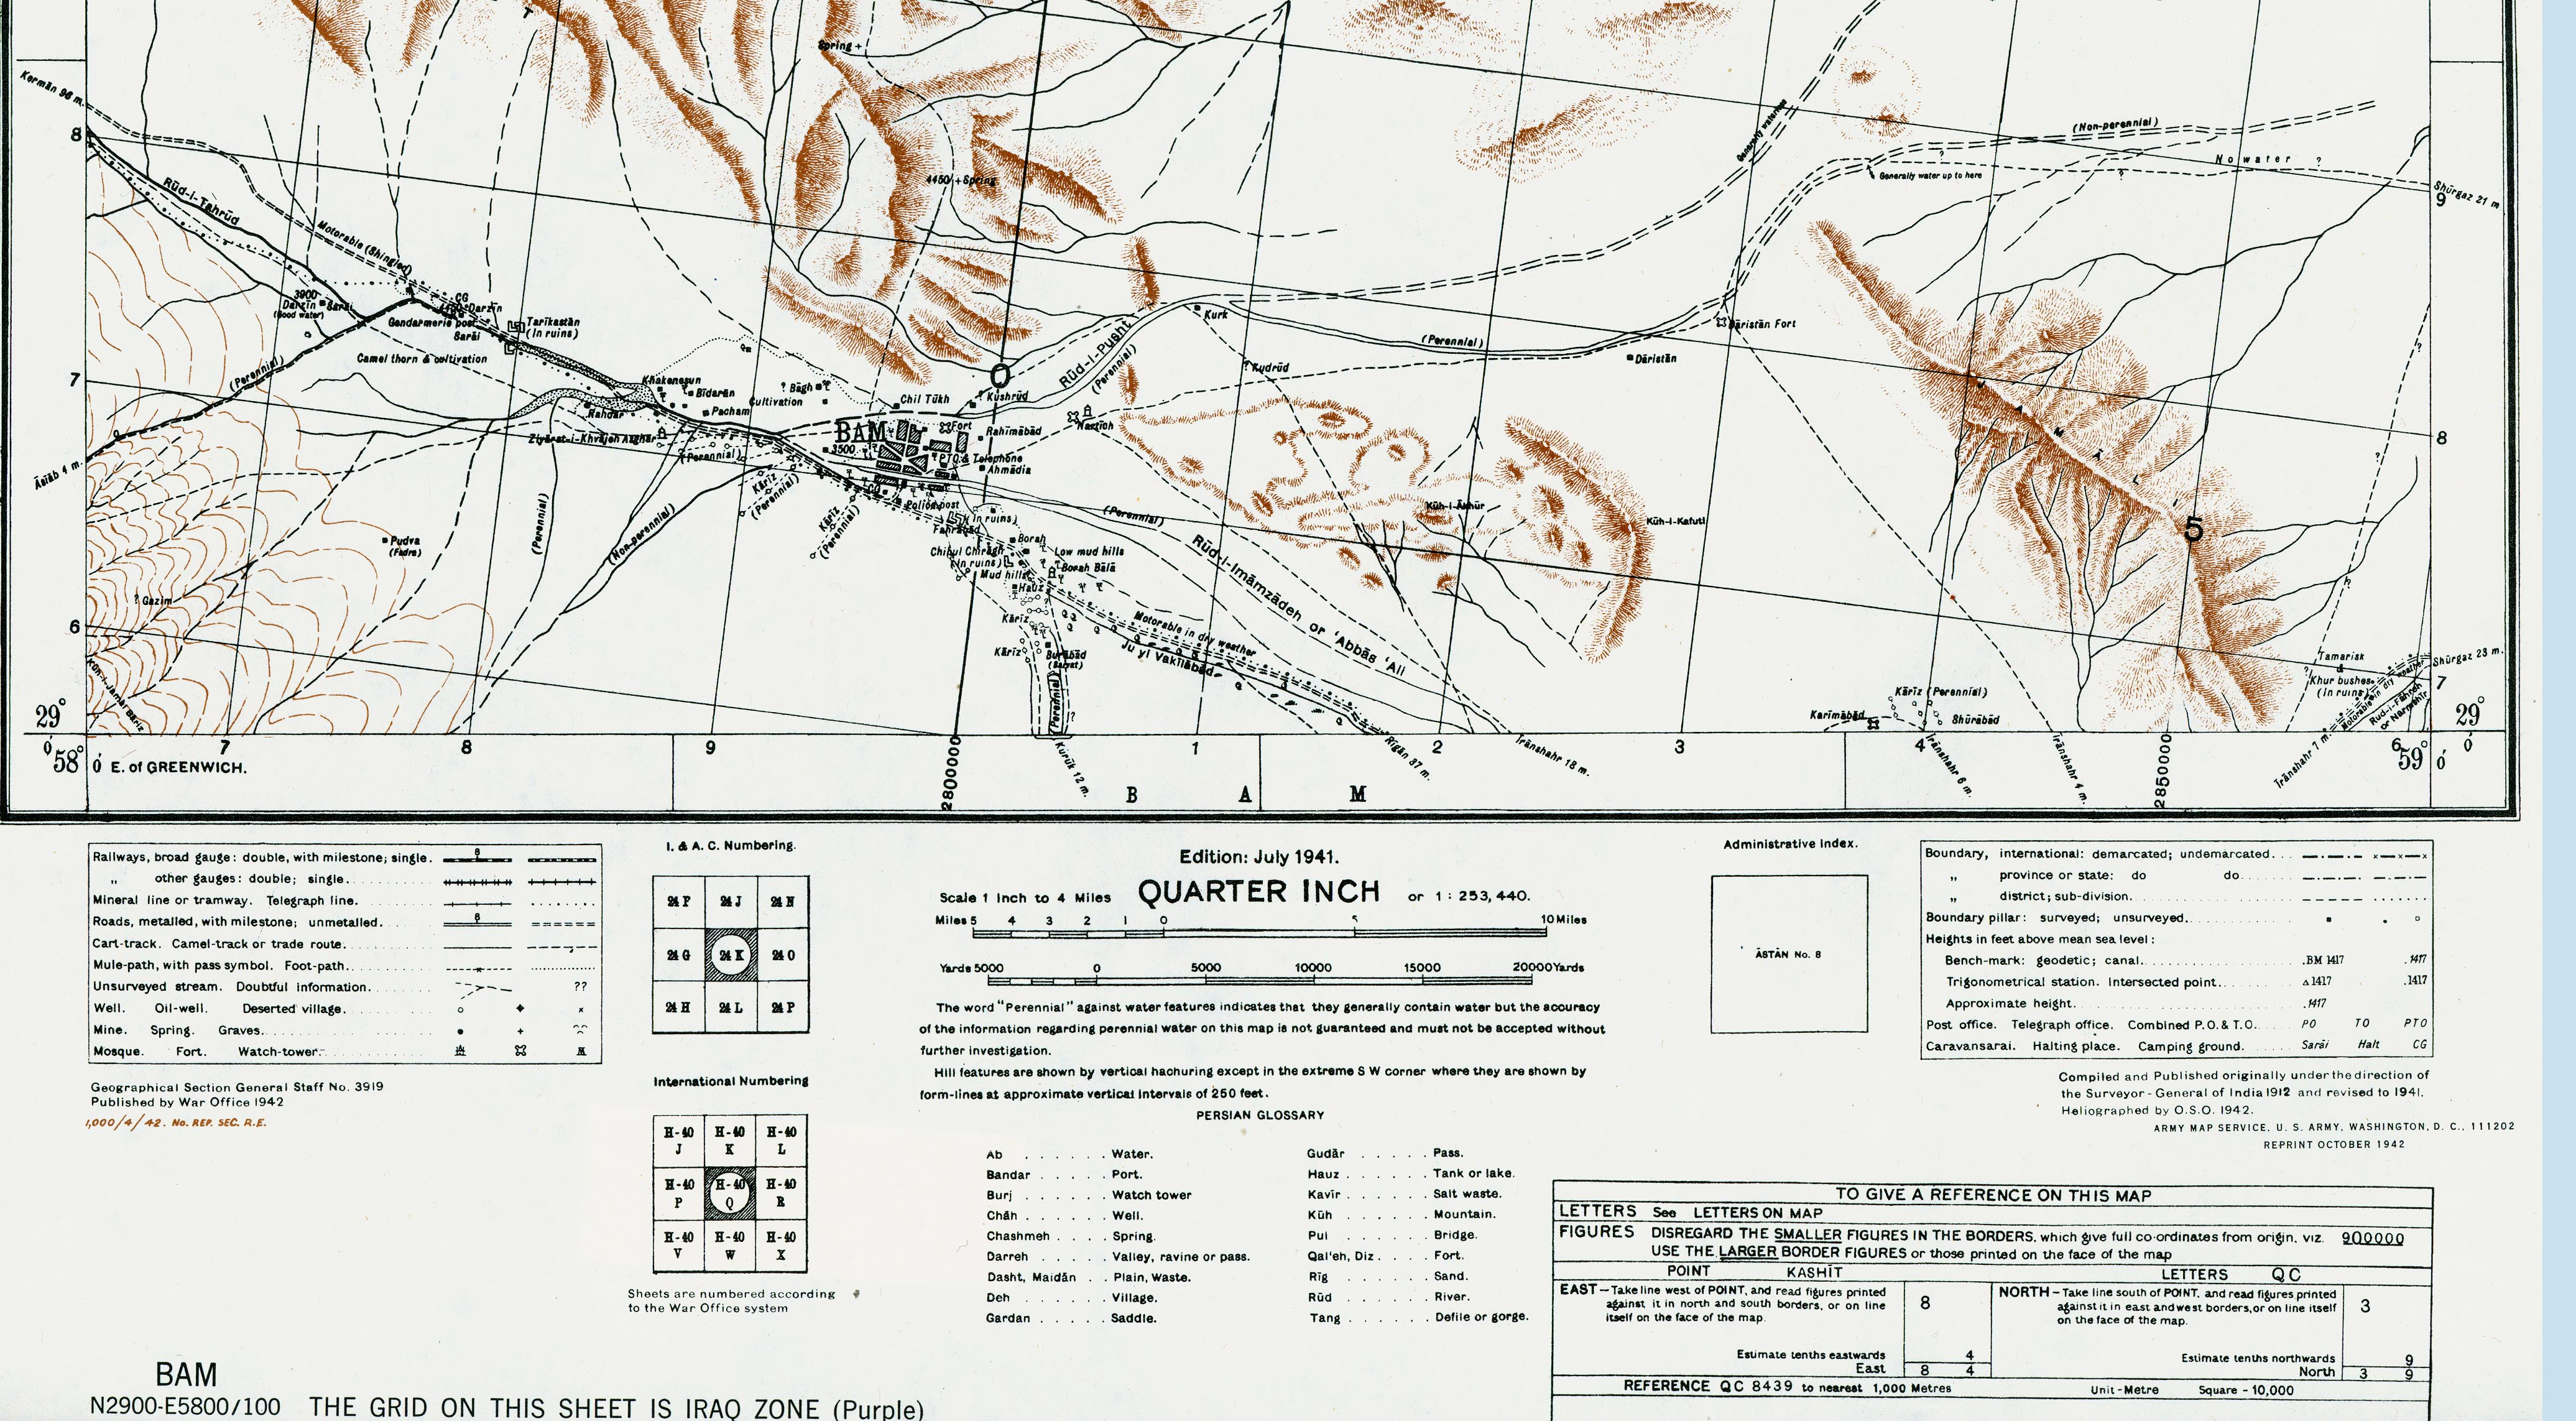 Bam Area Shaded Relief Map, Iran 1942